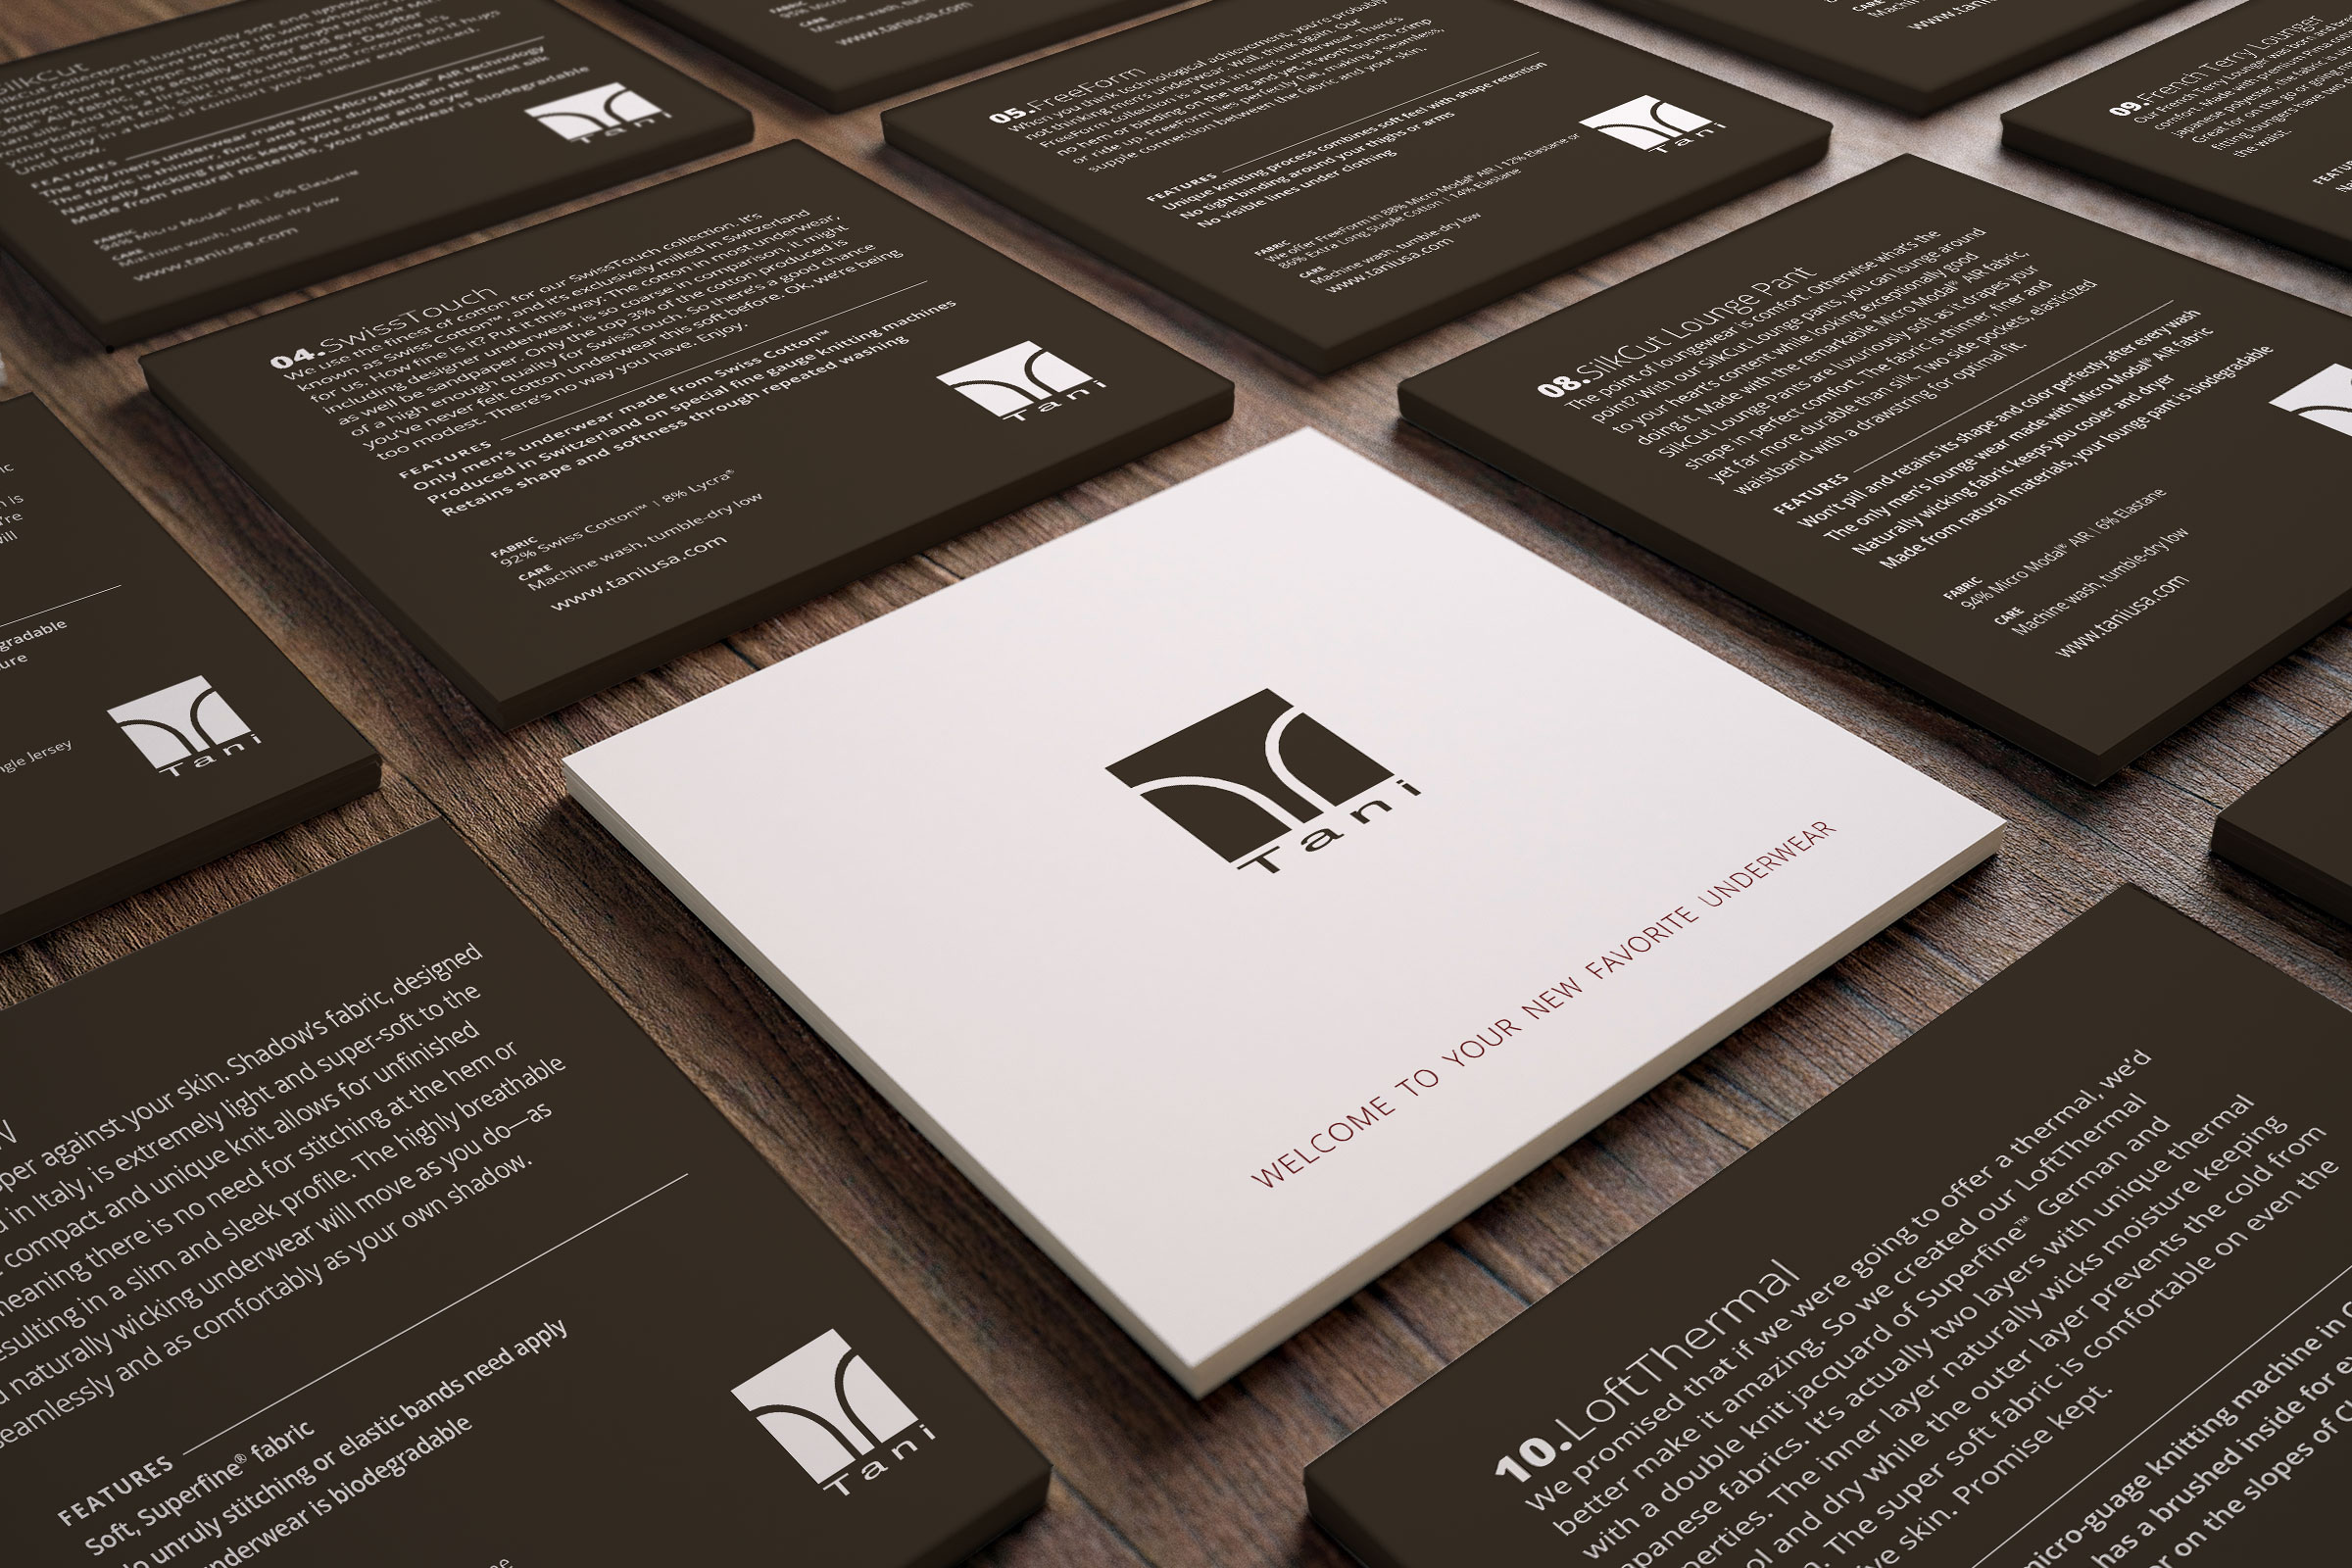 Tani Underwear Product Cards & Brand Collateral - pondSoup